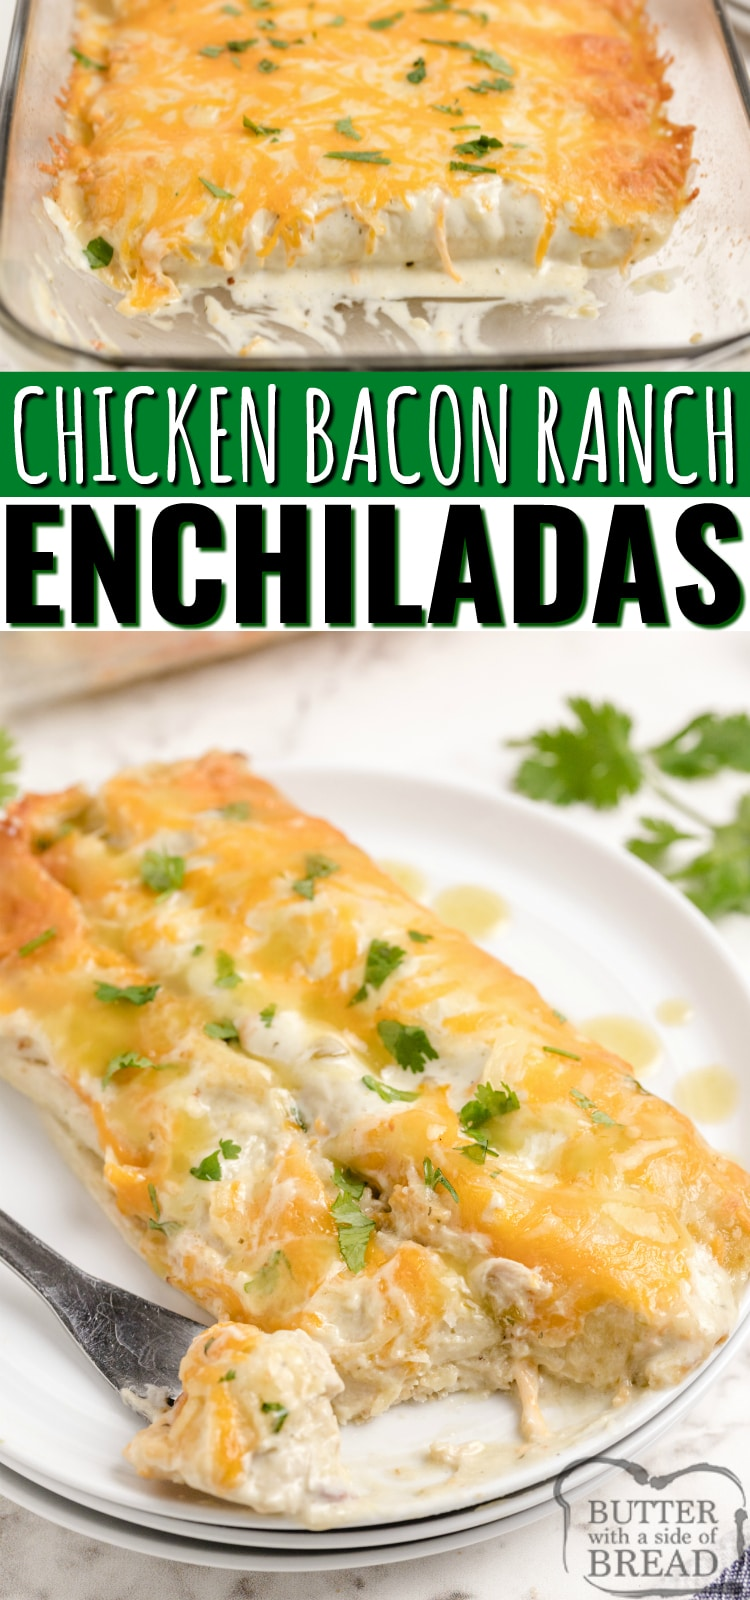 Chicken Bacon Ranch Enchiladas made with chicken, bacon, ranch dressing and cheese. Simple chicken enchilada recipe with a little bit of a twist! Easy dinner recipe that comes together quickly with tons of flavor that even the pickiest eater will love.